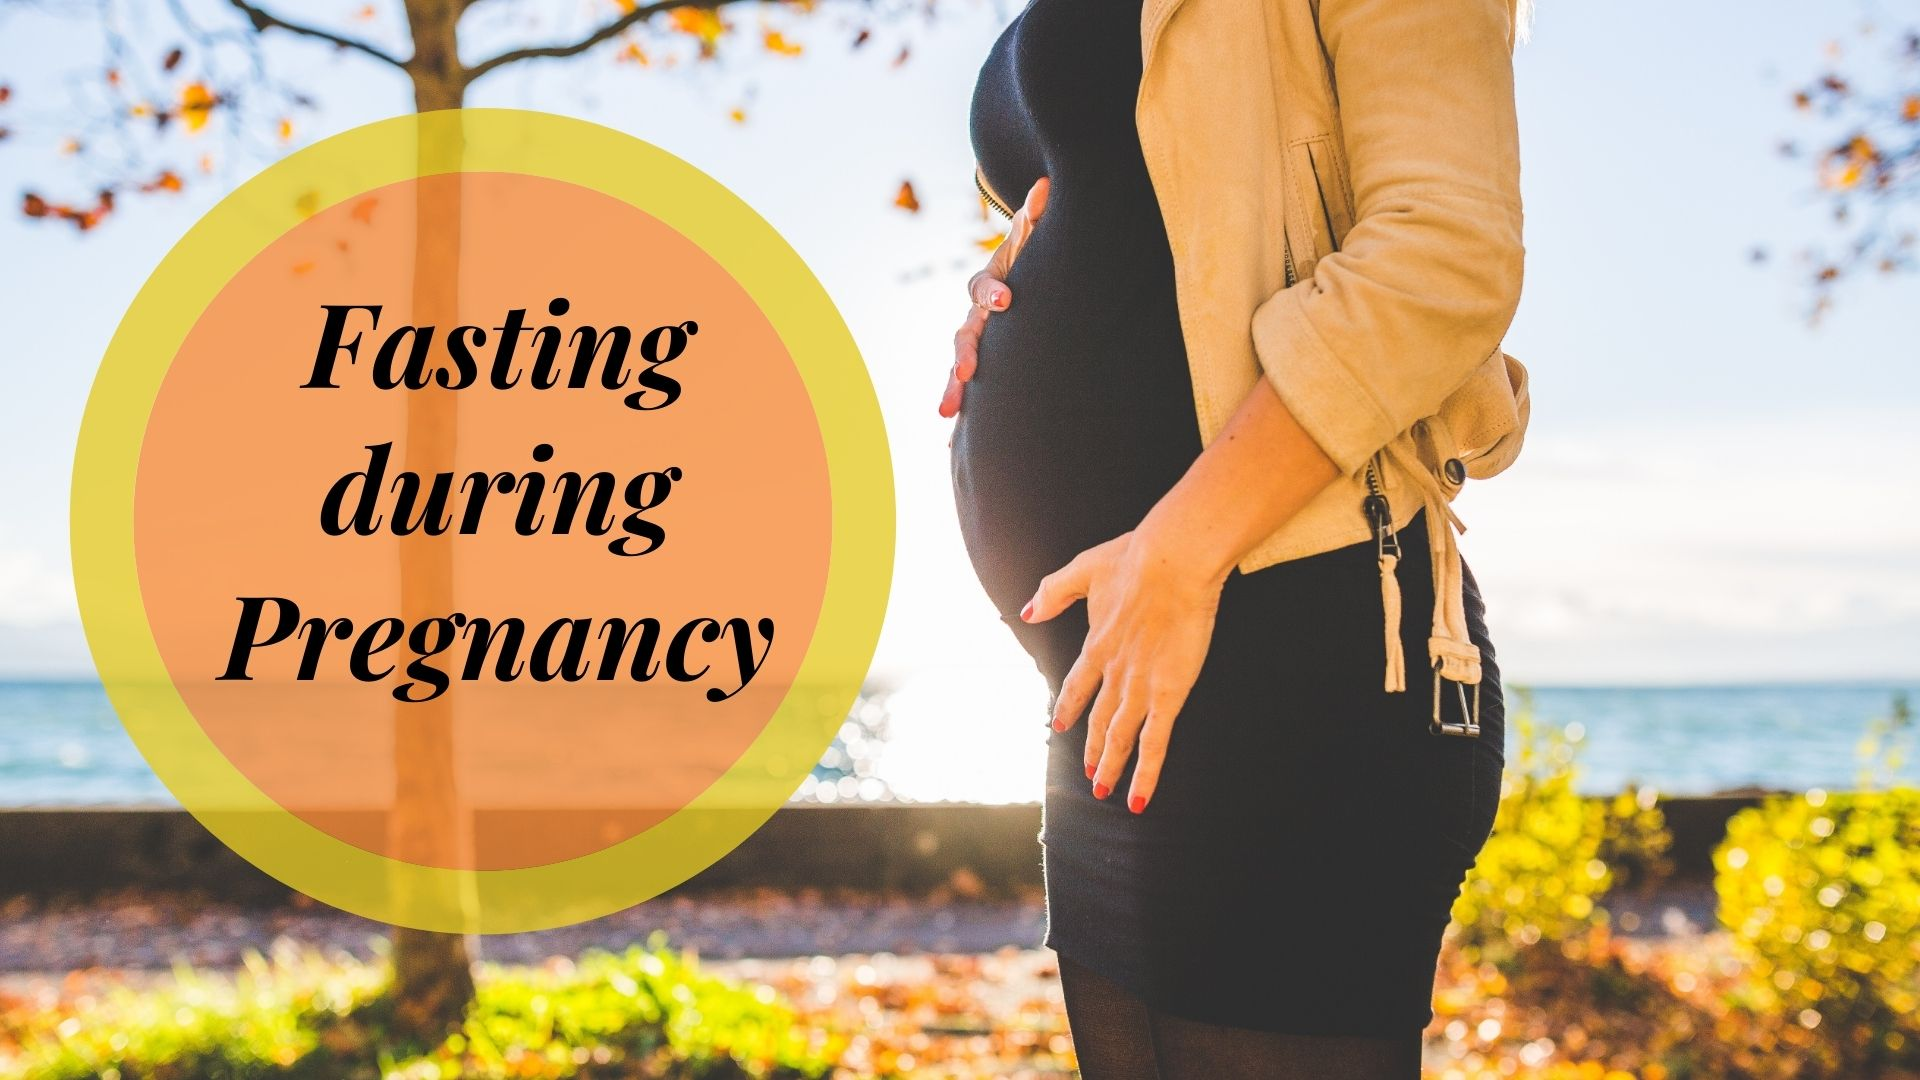 Pregnancy and Fasting